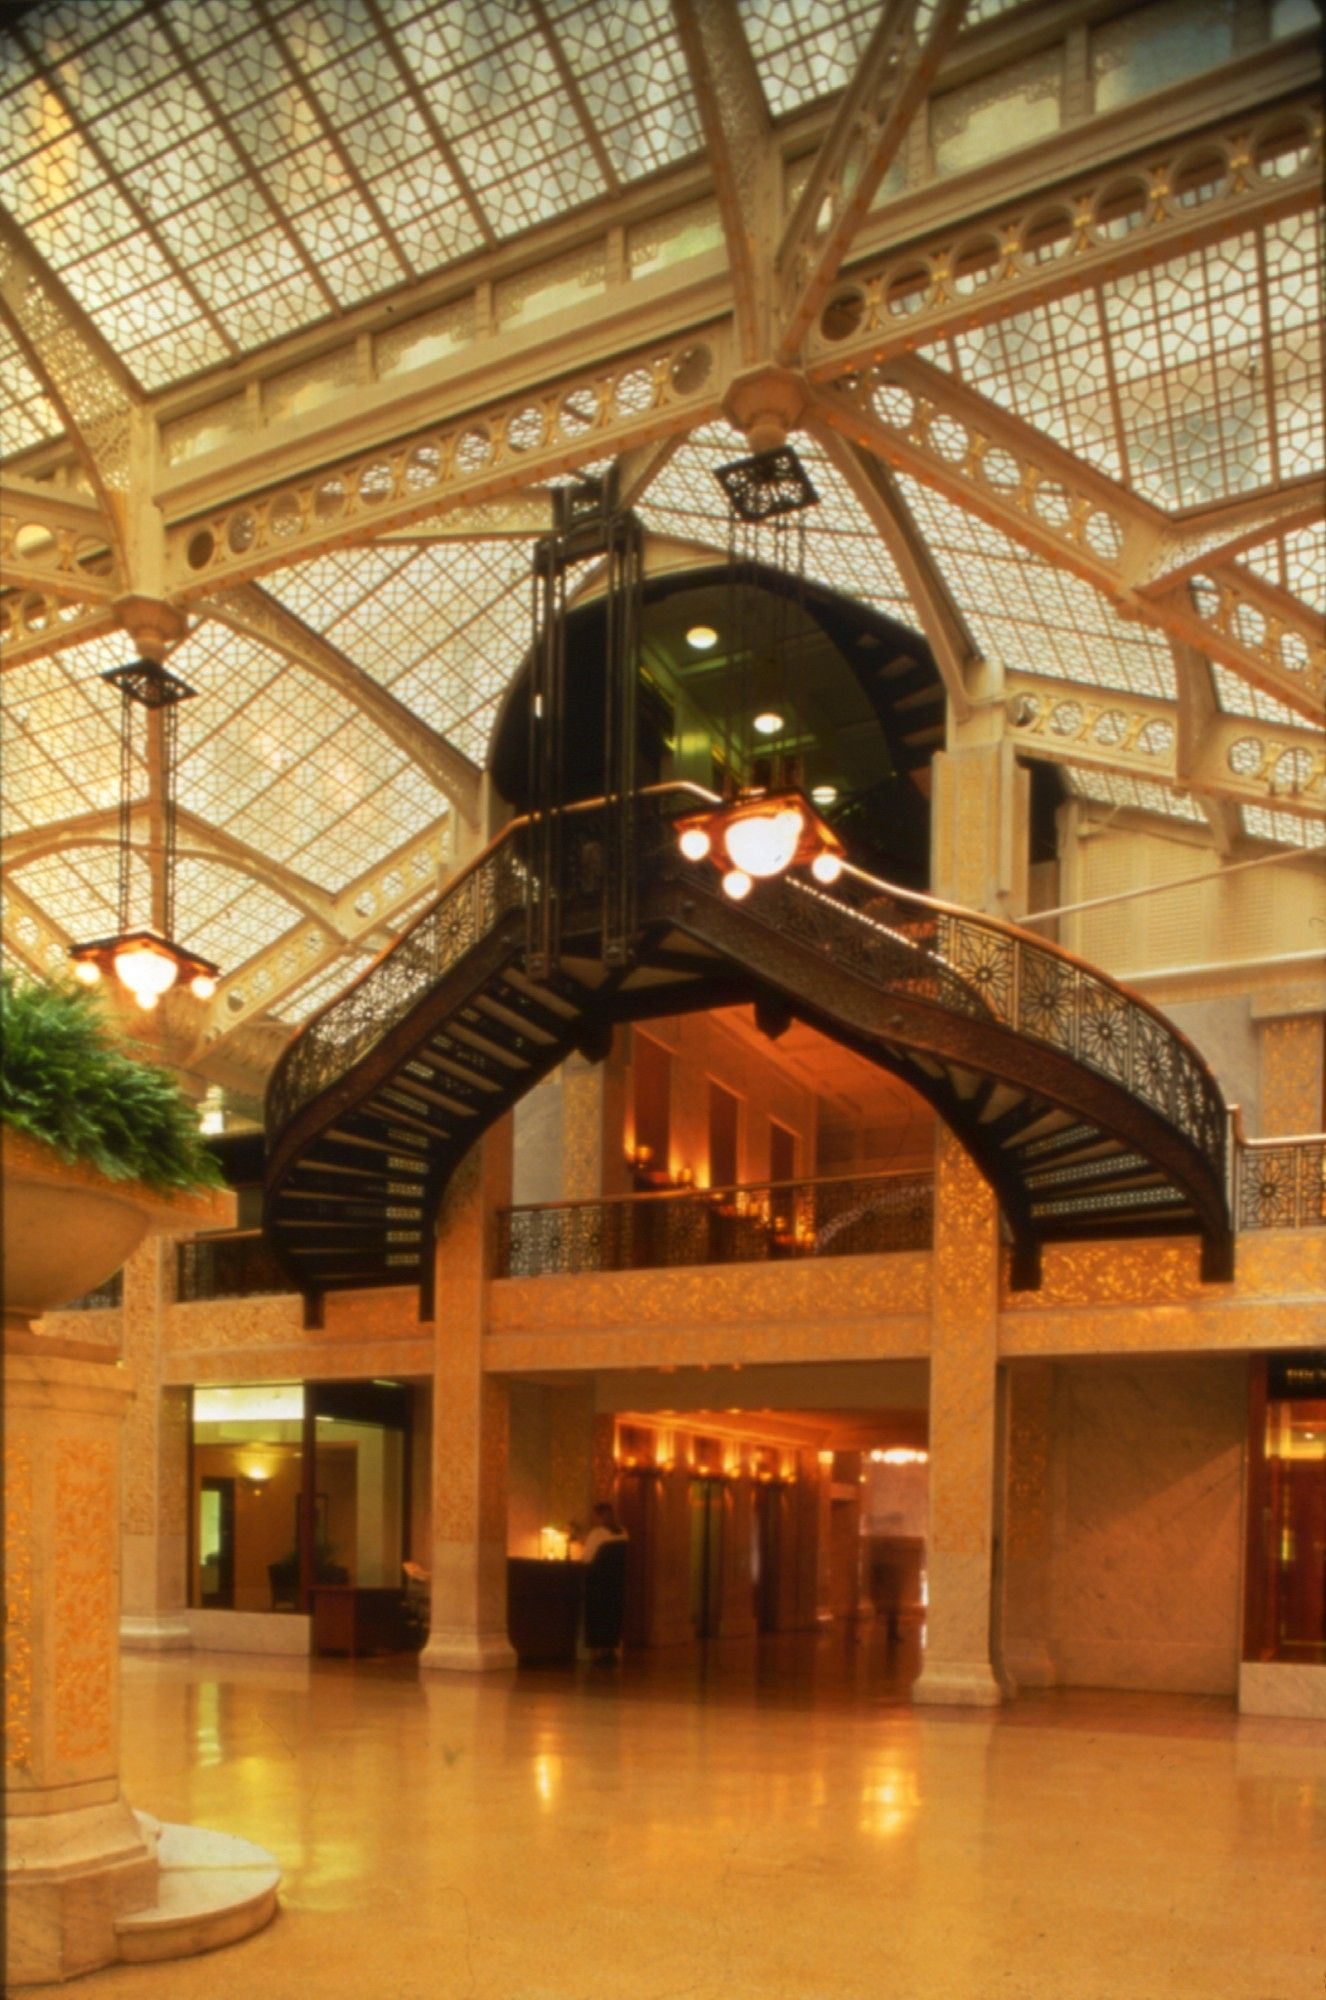 The Rookery Rookery, Architecture, Building